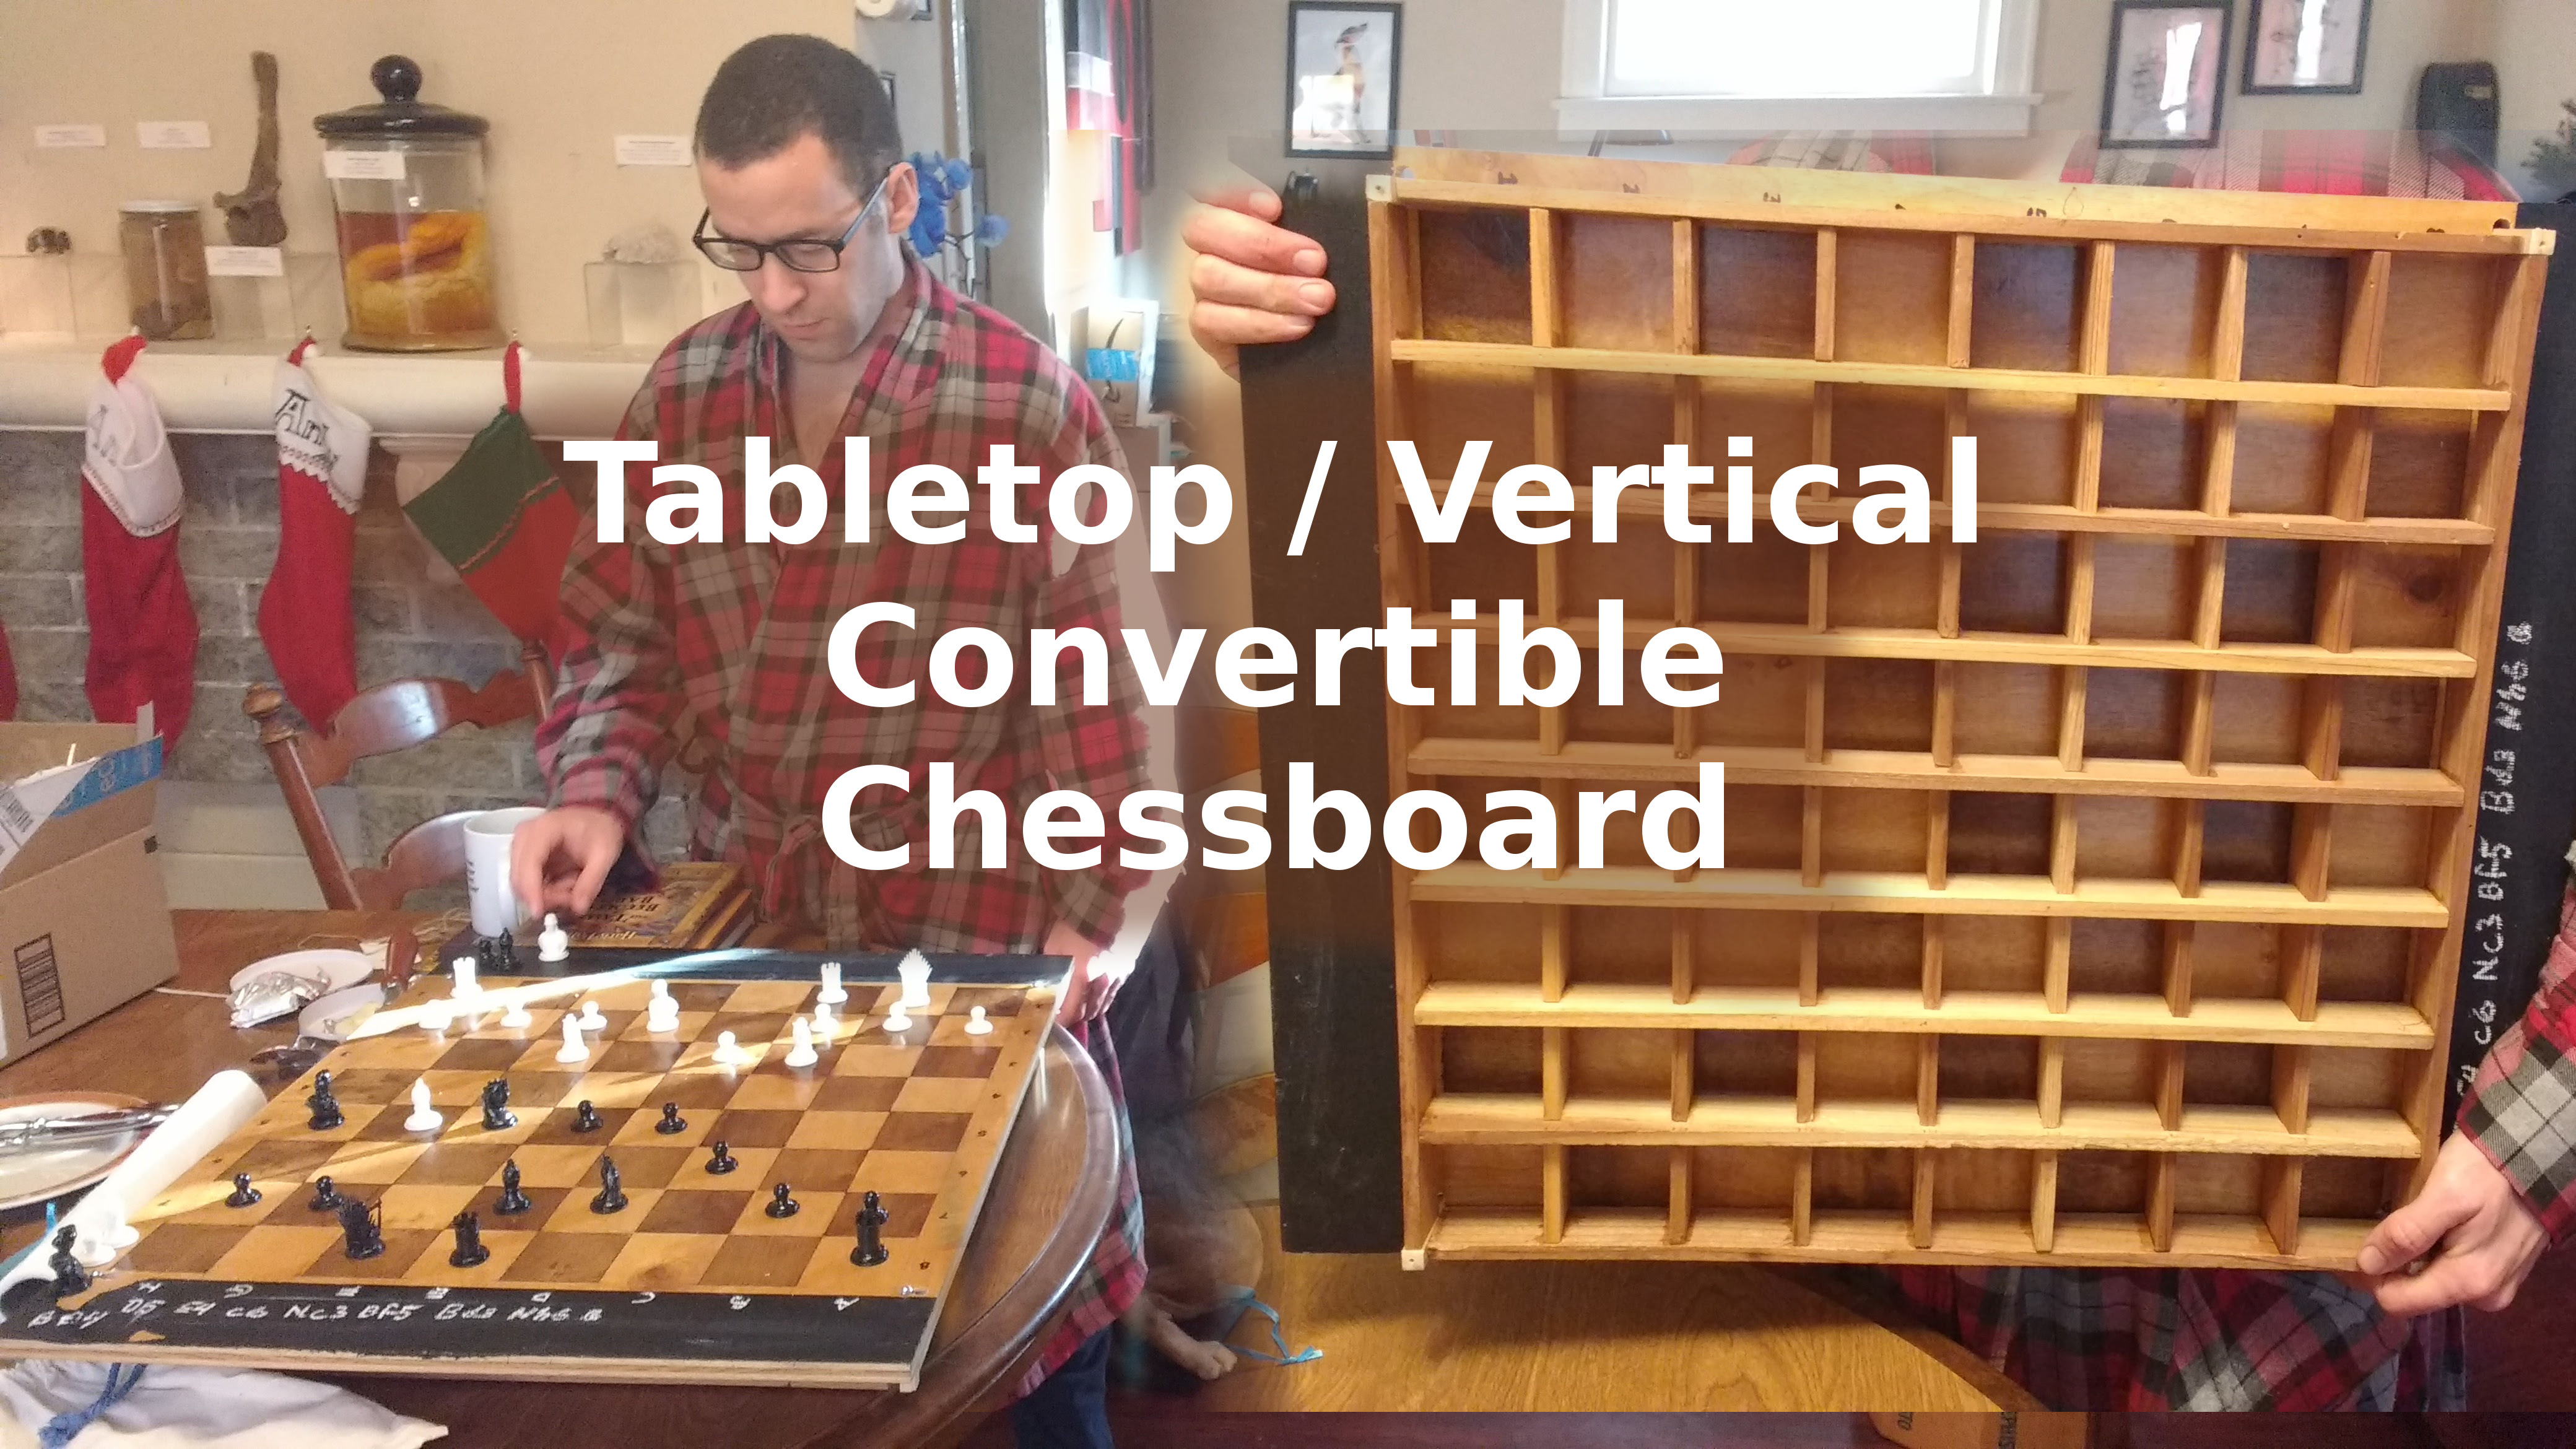 Picture of Tabletop-to-vertical Convertible Chessboard